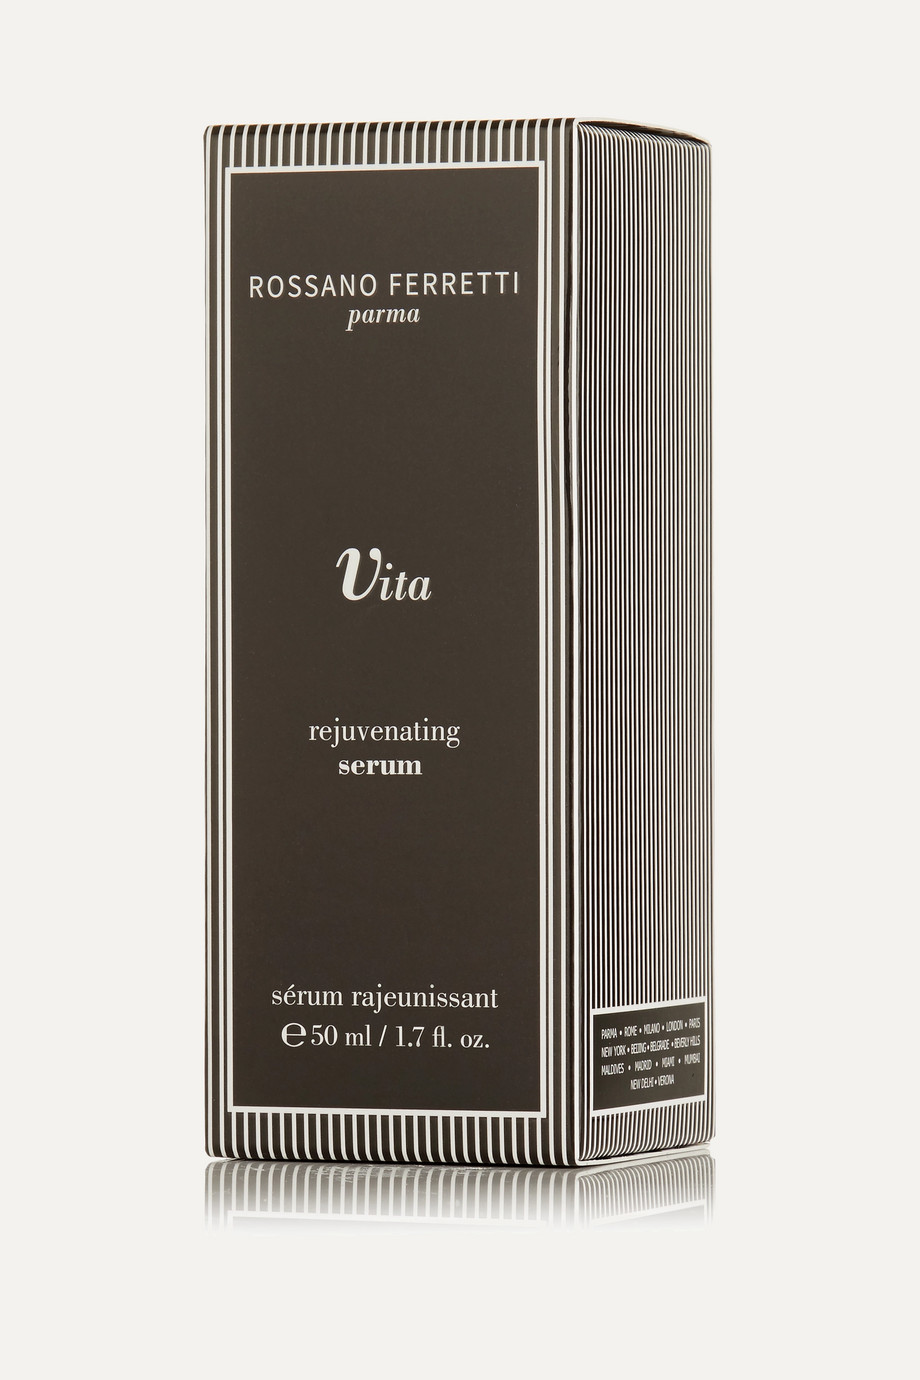 ROSSANO FERRETTI Parma Vita Rejuvenating Serum, 50ml